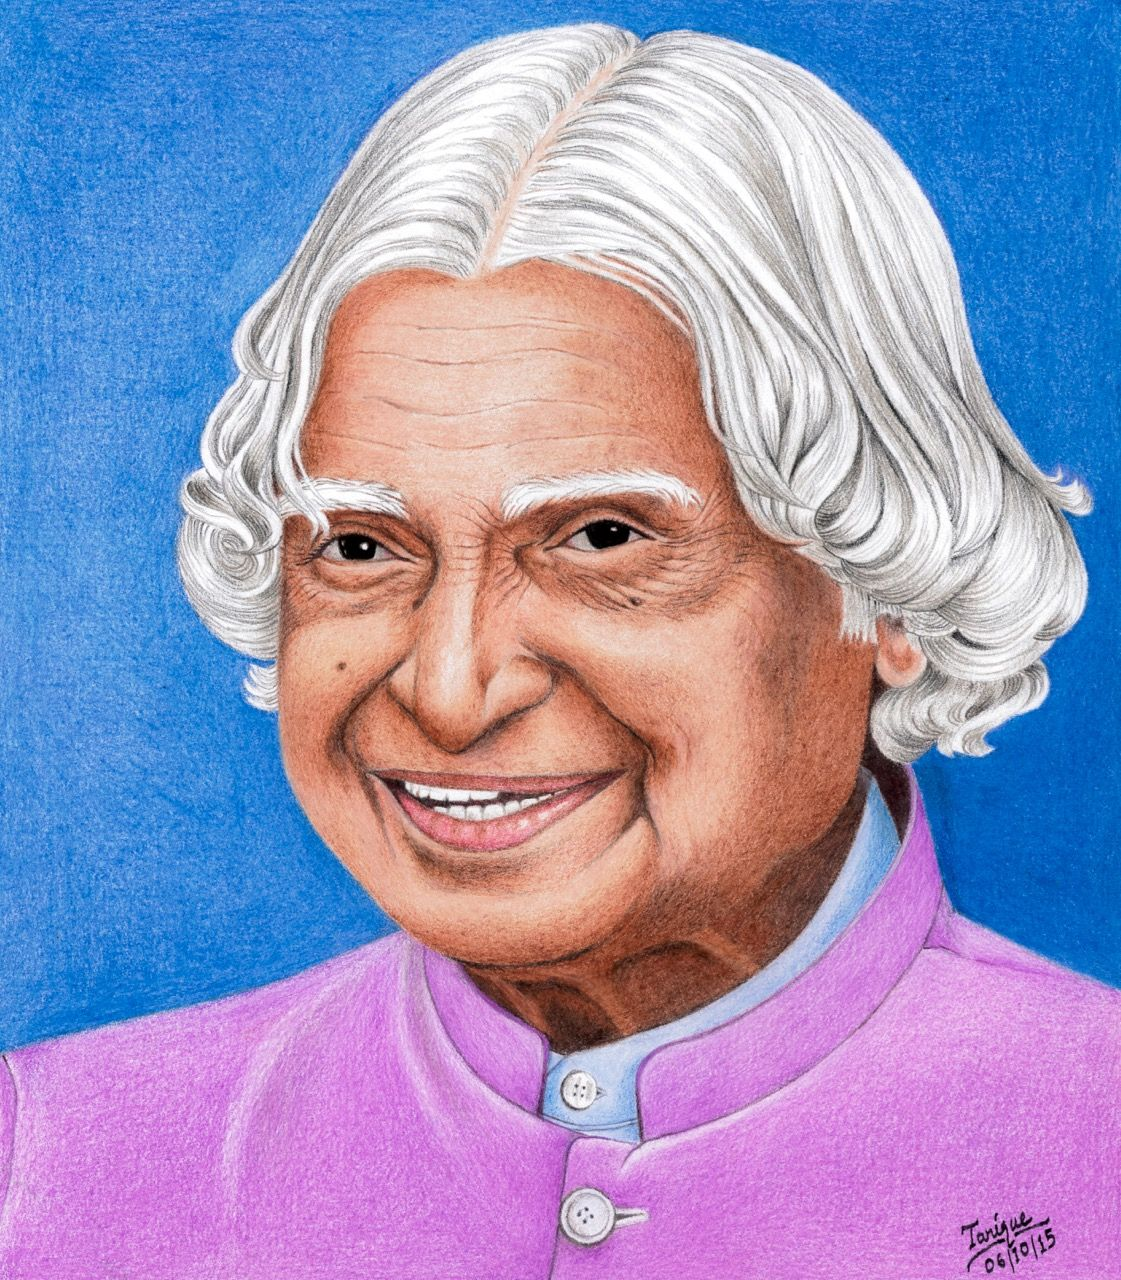 A. P. J. Abdul Kalam Hd Wallpaper For Facebook